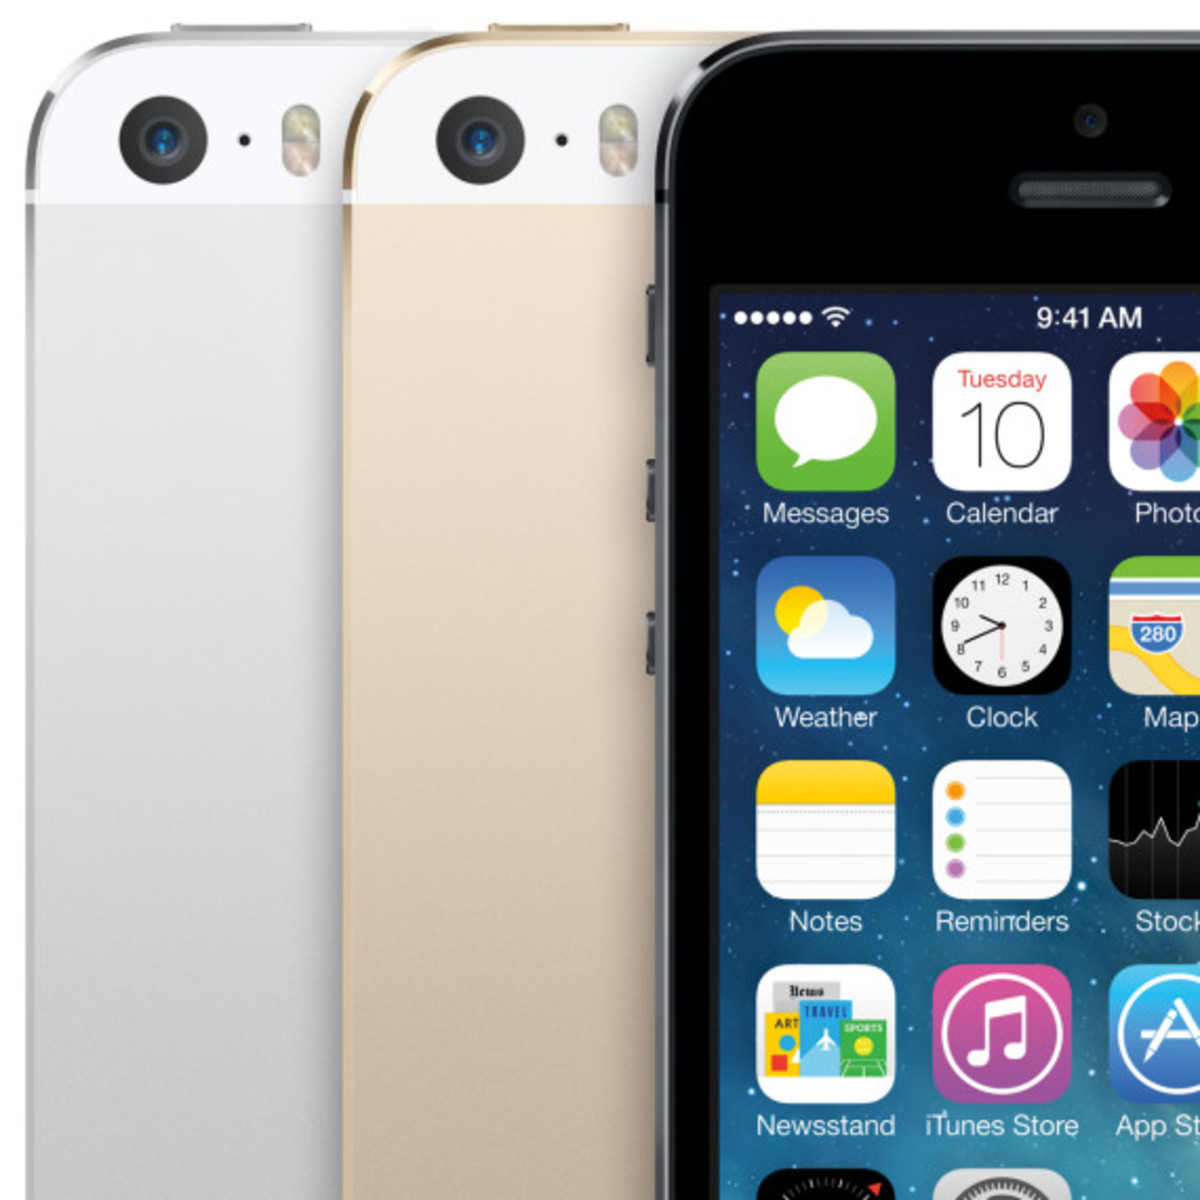 Apple iPhone 5S - Officially Unveiled - 1